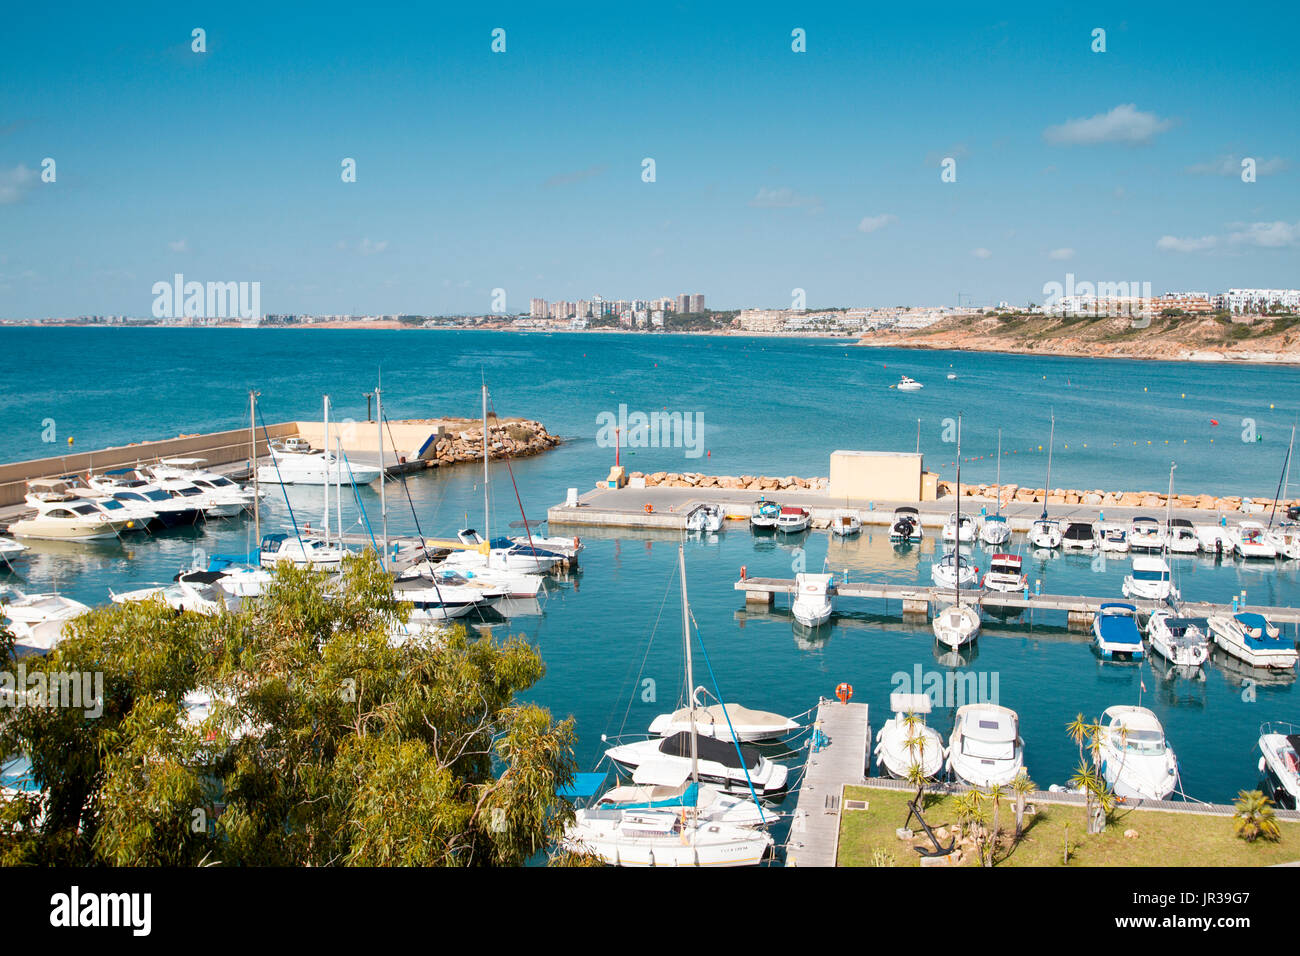 Alicante spain stock photos alicante spain stock images - Stock uno alicante ...